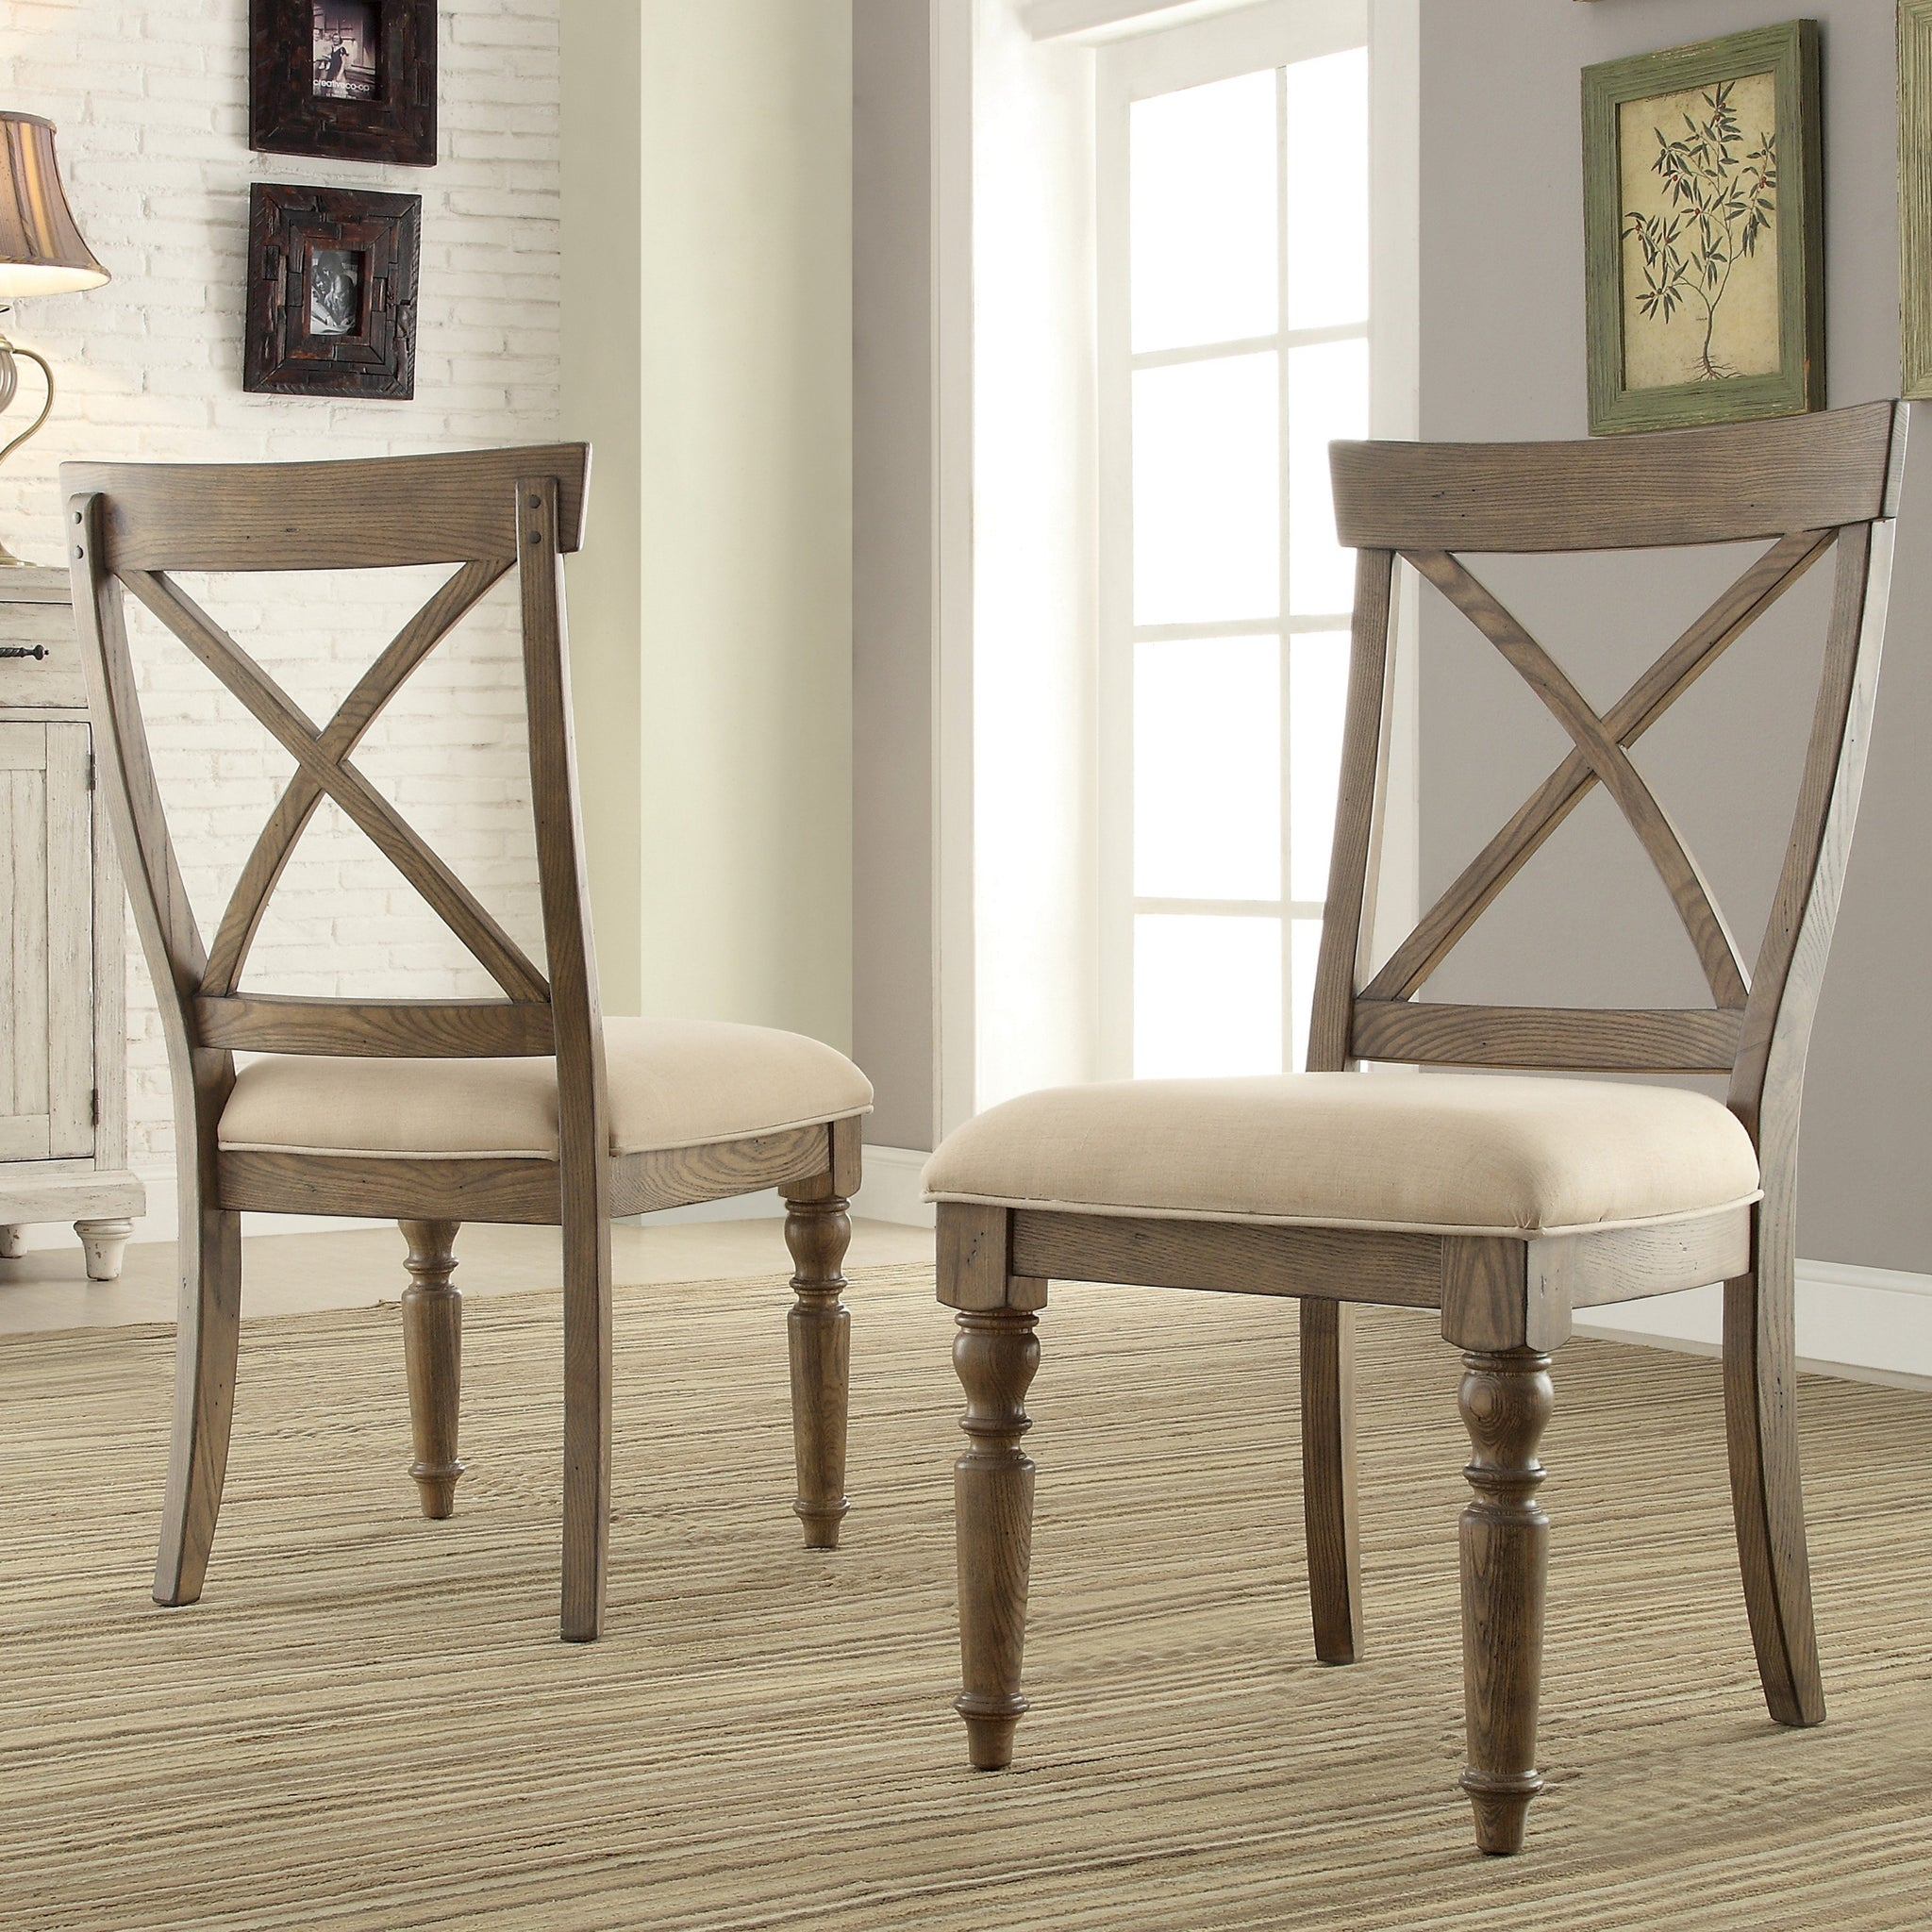 Trani Weathered Driftwood Finish Cross Back Dining Chairs, Set of 2